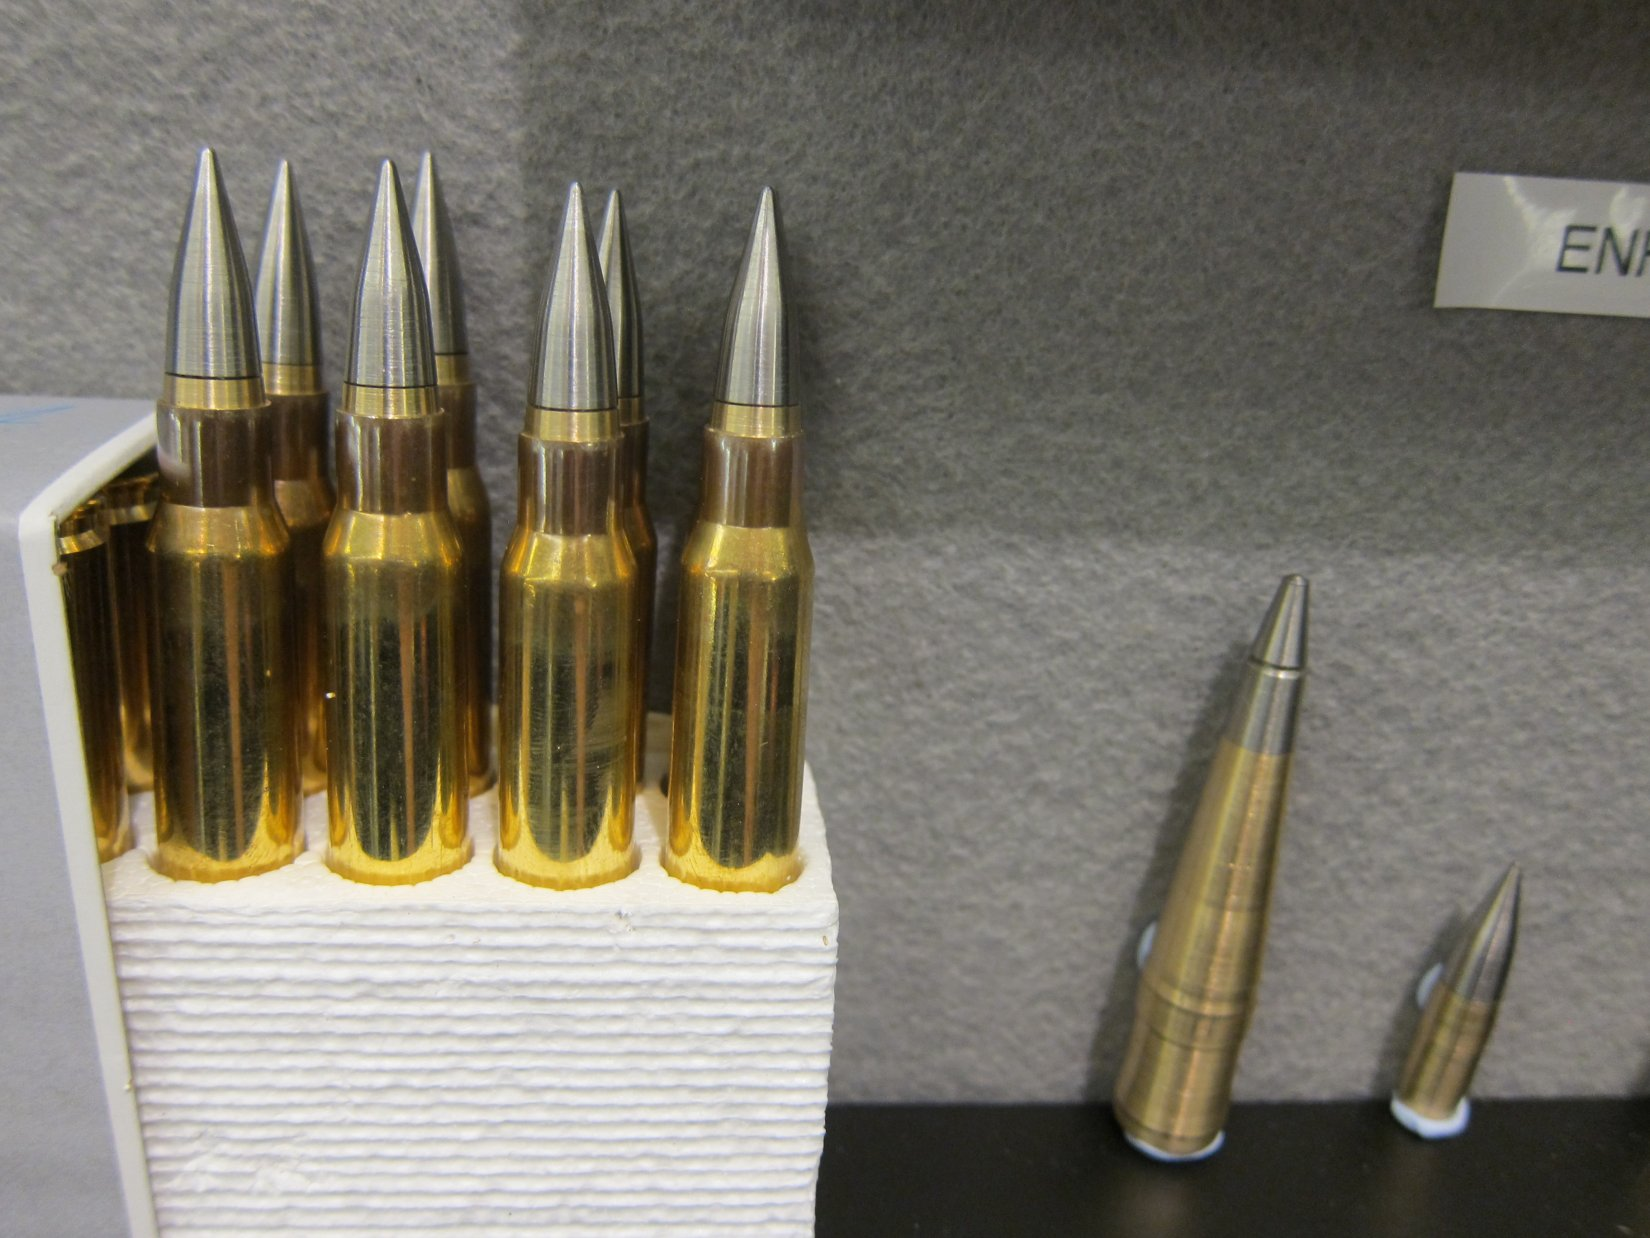 DSG Technology/PNW Arms Super-Sniper Ammunition (SSA) Enhanced-Range Rifle Ammo Being Made in the USA for Military Special Operations Forces (SOF) Long-Range-Interdiction/Sniping and Close Quarters Battle/Close Quarters Combat (CQB/CQC) Applications: Solid-Copper Super Sniper Tactical (SST) Rounds/Bullets and Tungsten-Tipped Super Sniper Armor-Piercing/Armor-Penatrating (SSAP) AP Rounds/Bullets in All Military NATO Calibers! (Video!)